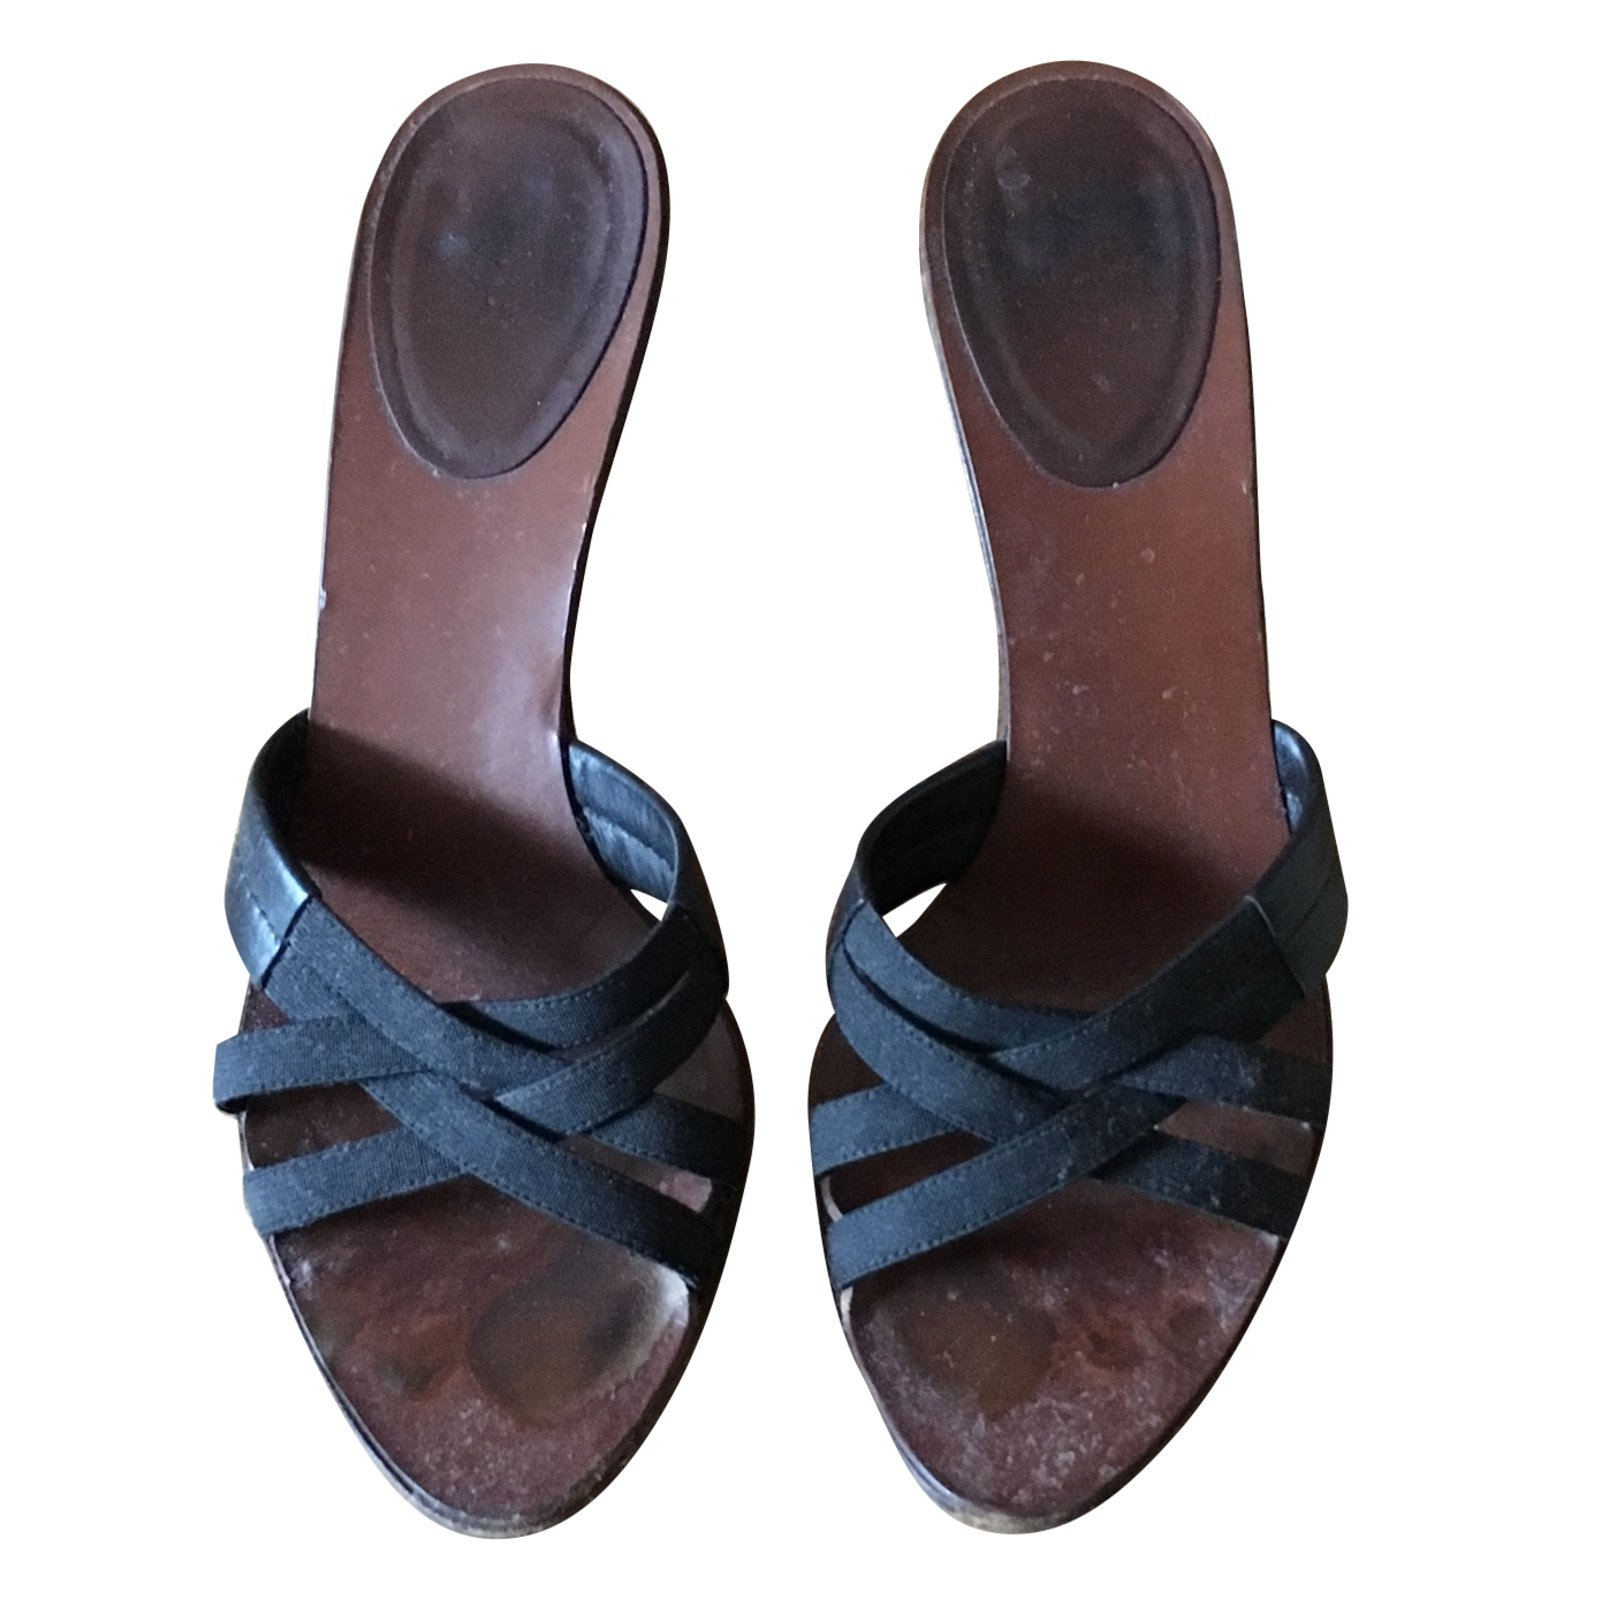 2cde25796bd Gucci Sandals Sandals Leather